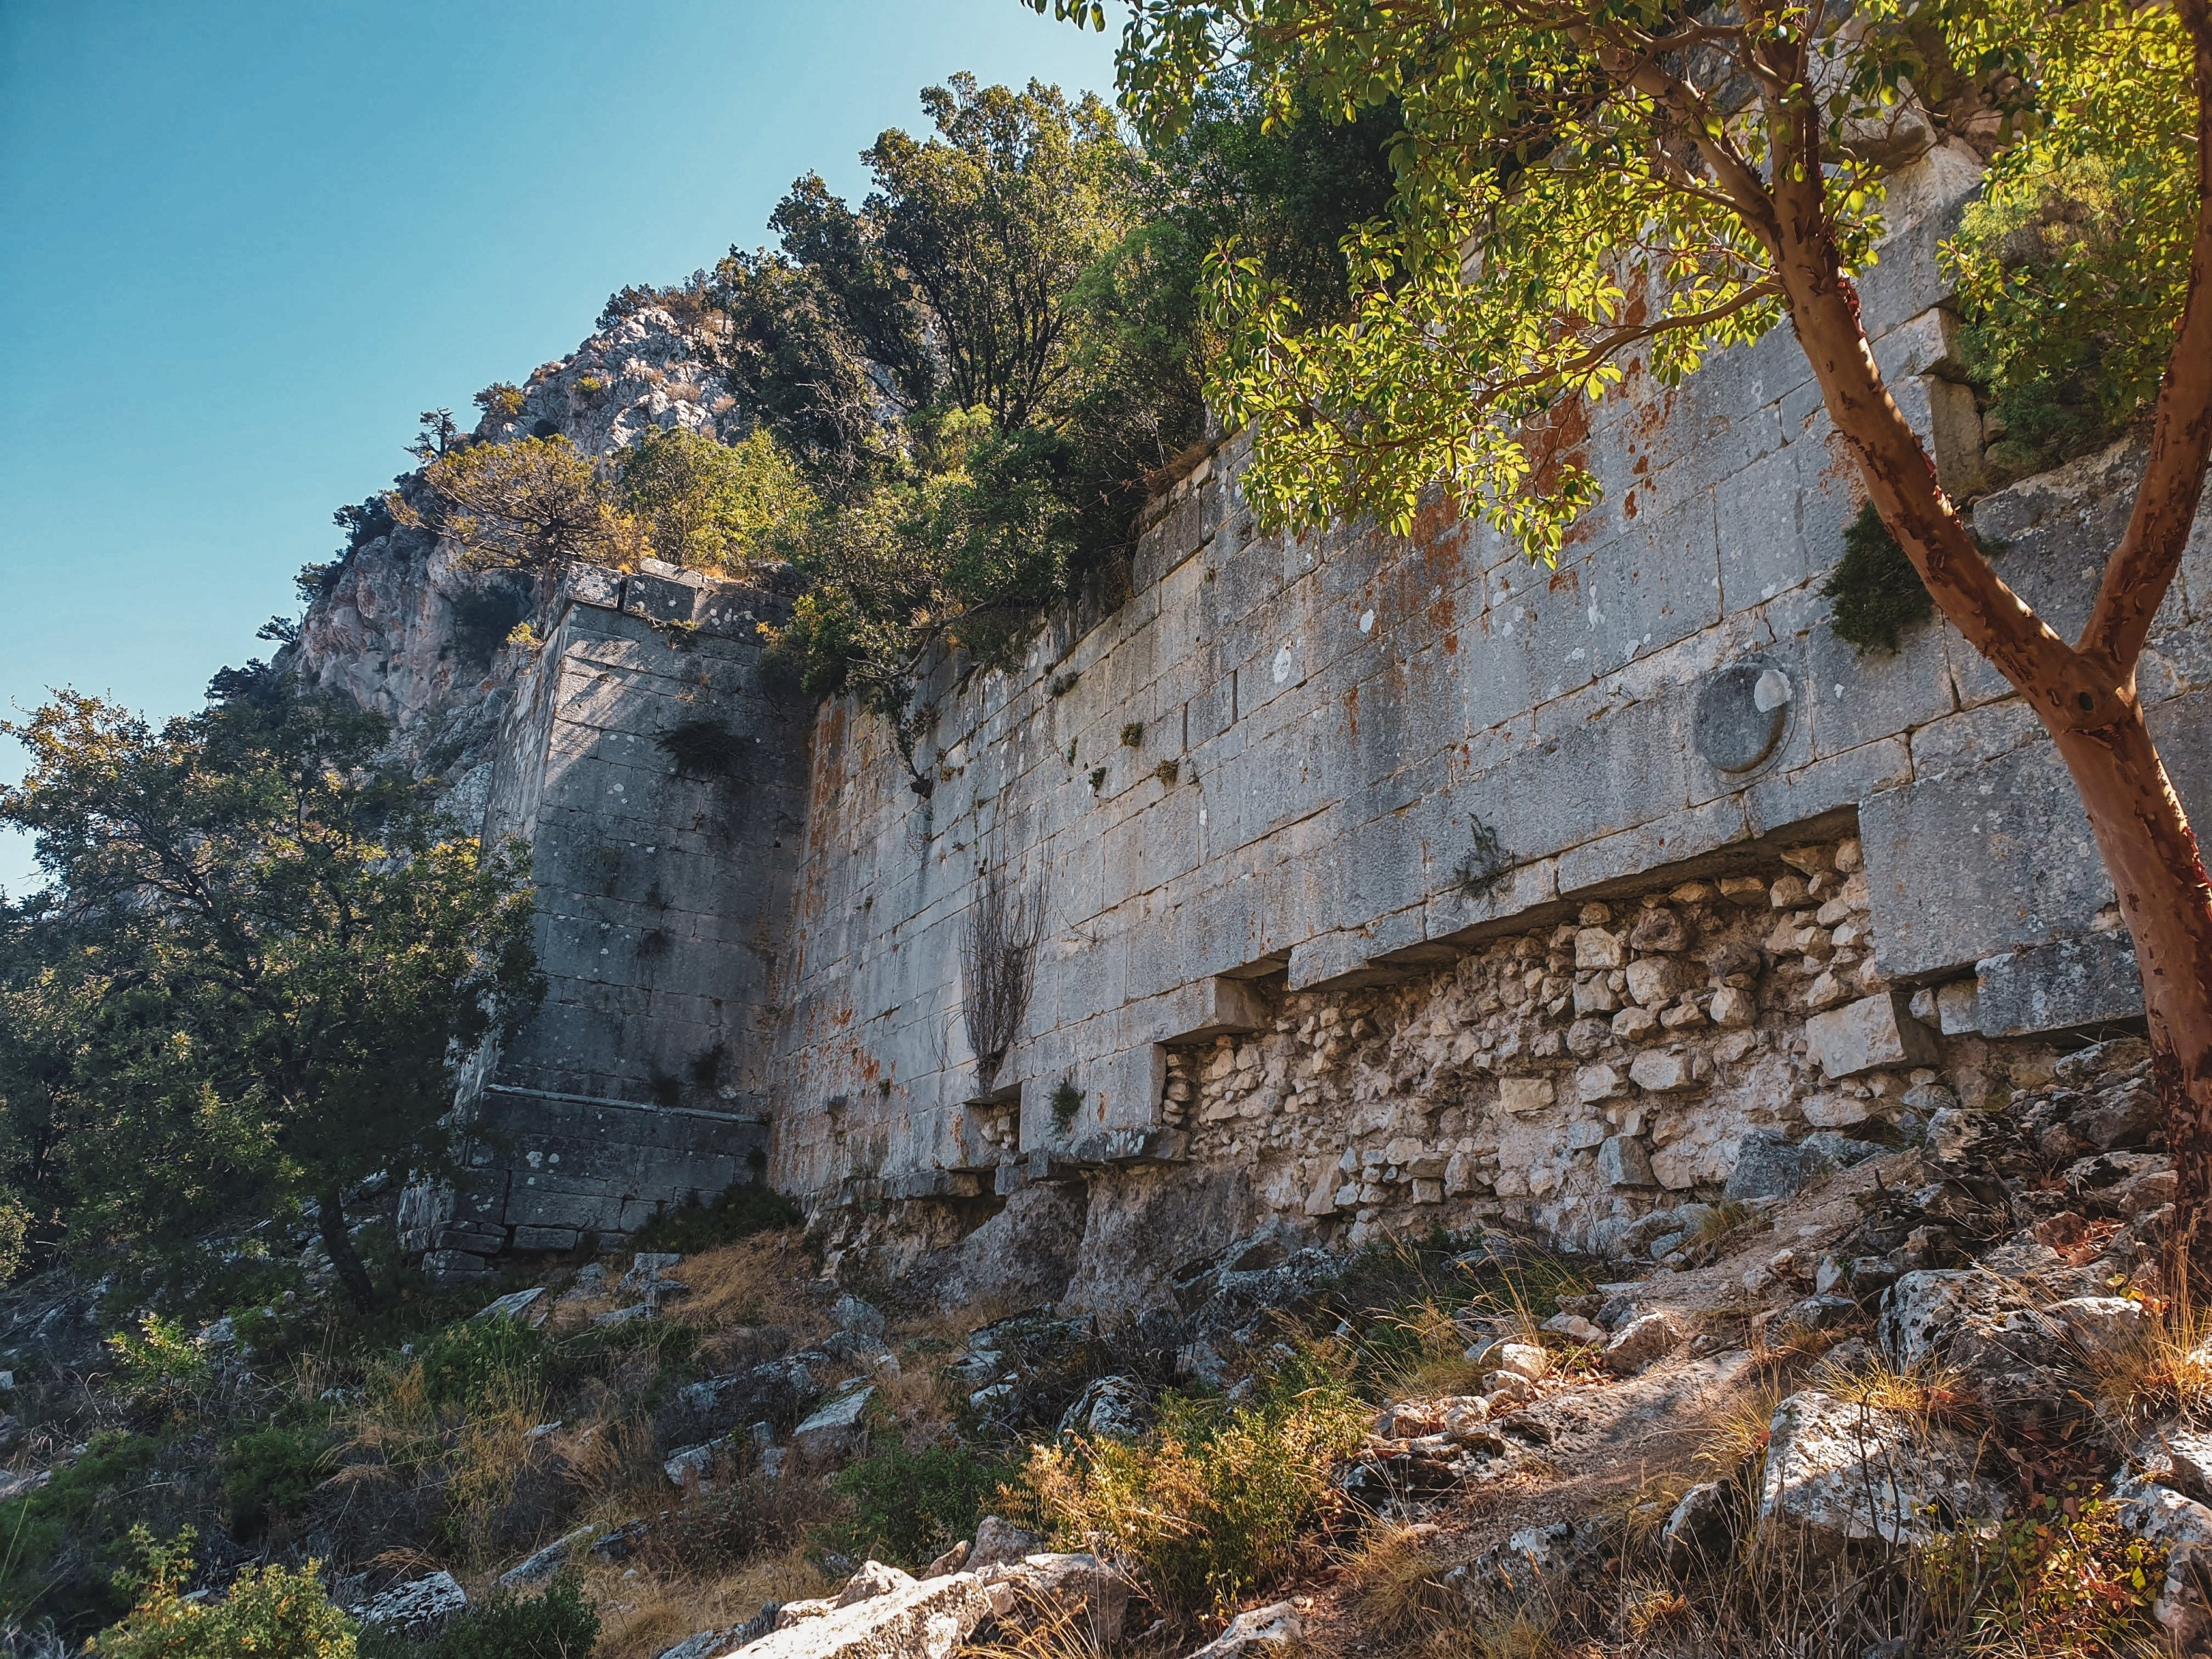 The walls of the lower city once protected Termessos from enemies. (Photo by Argun Konuk)